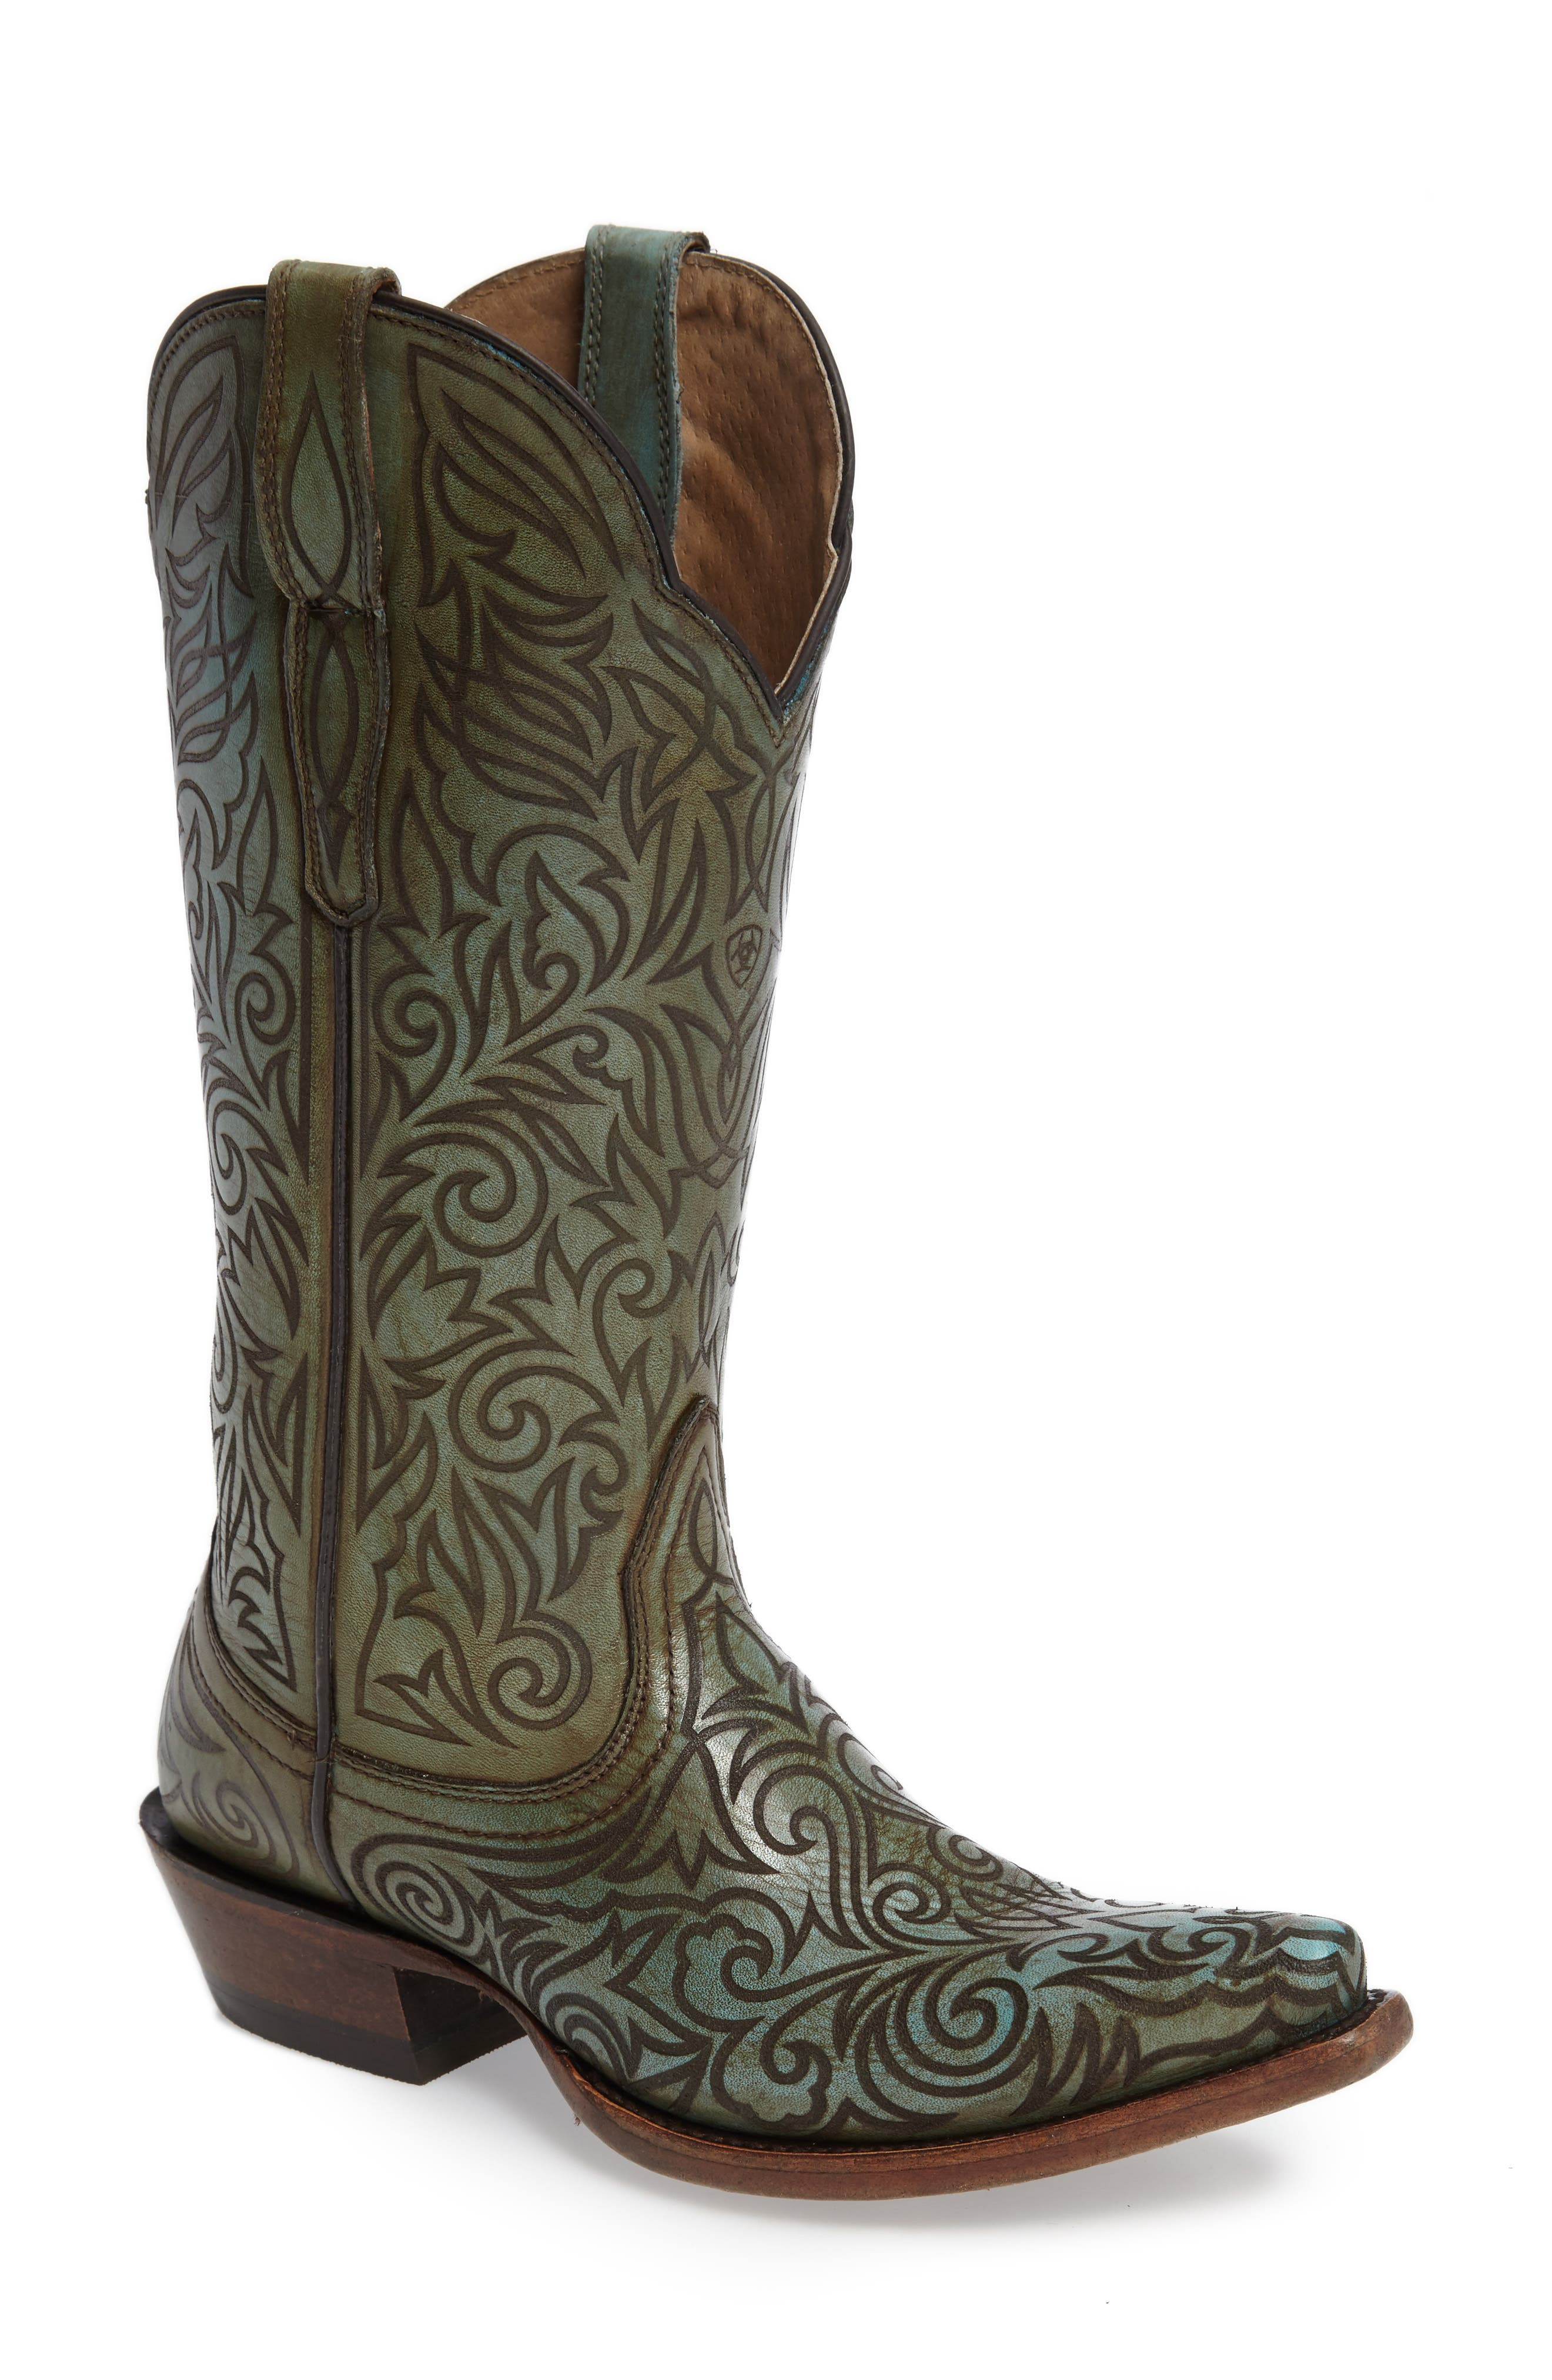 Alternate Image 1 Selected - Ariat Sterling Western Boot (Women)